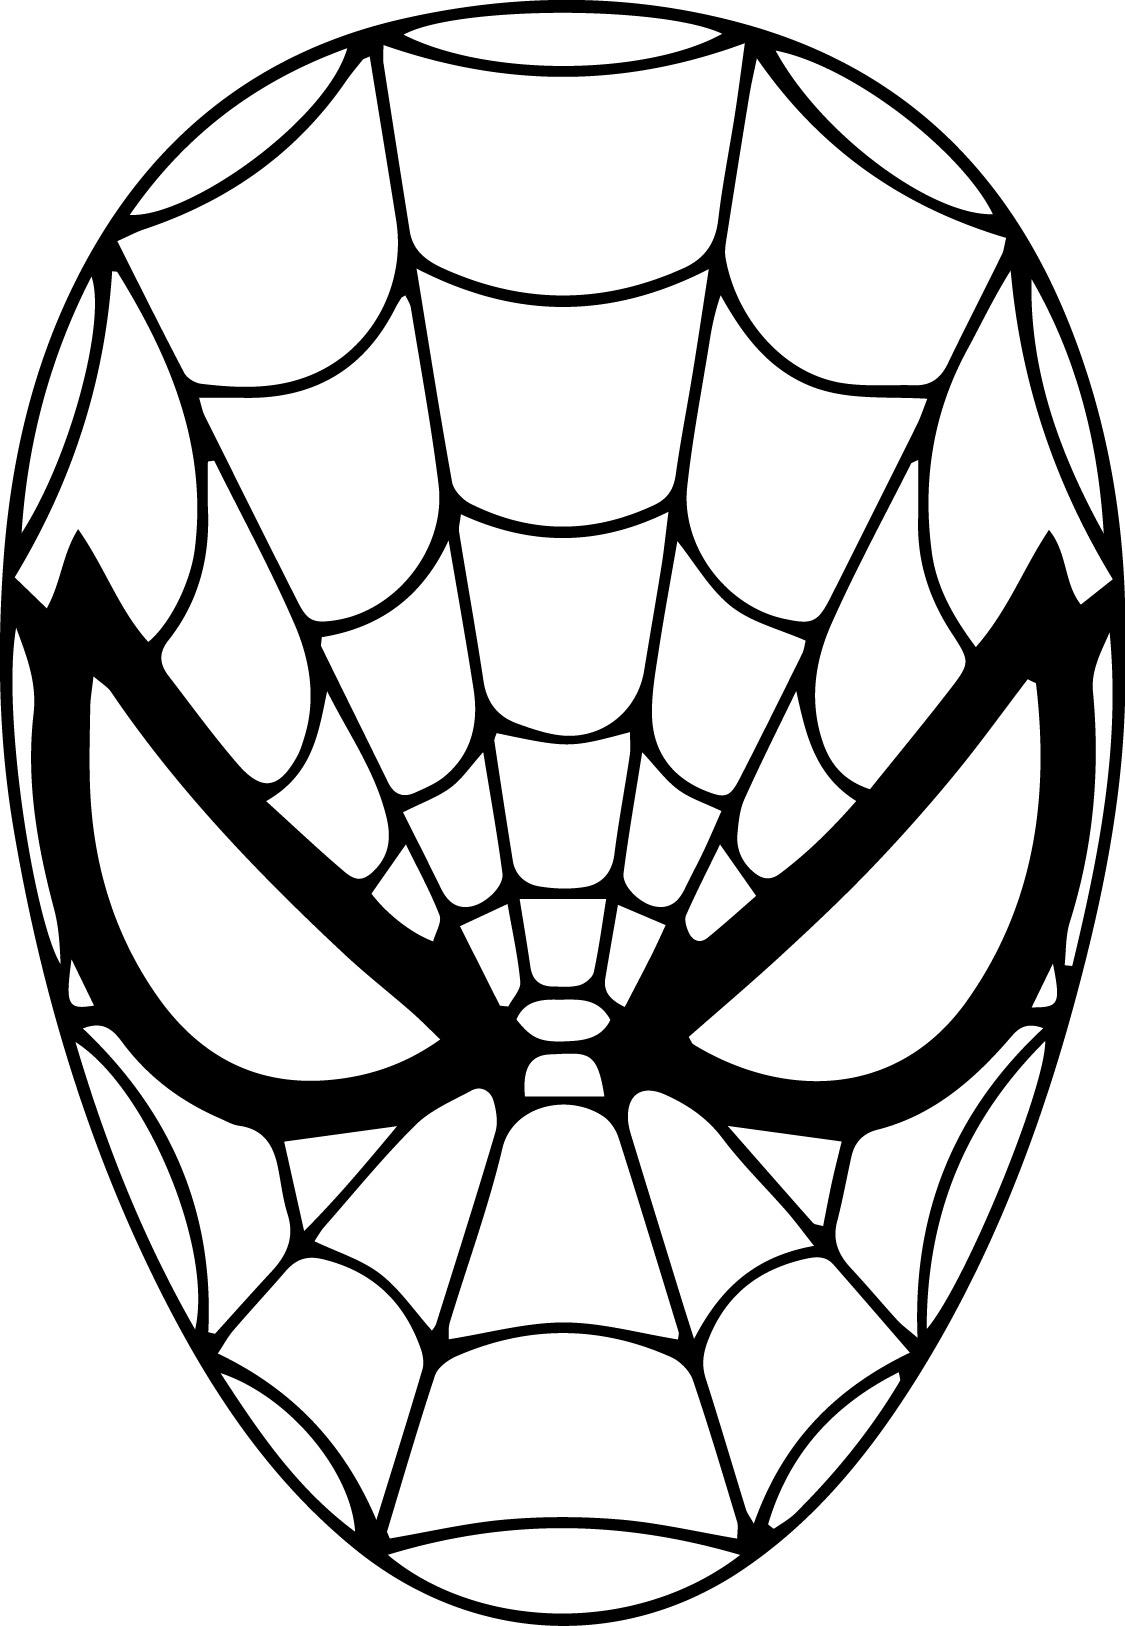 spiderman outline drawing spiderman outline drawing at getdrawings free download spiderman drawing outline